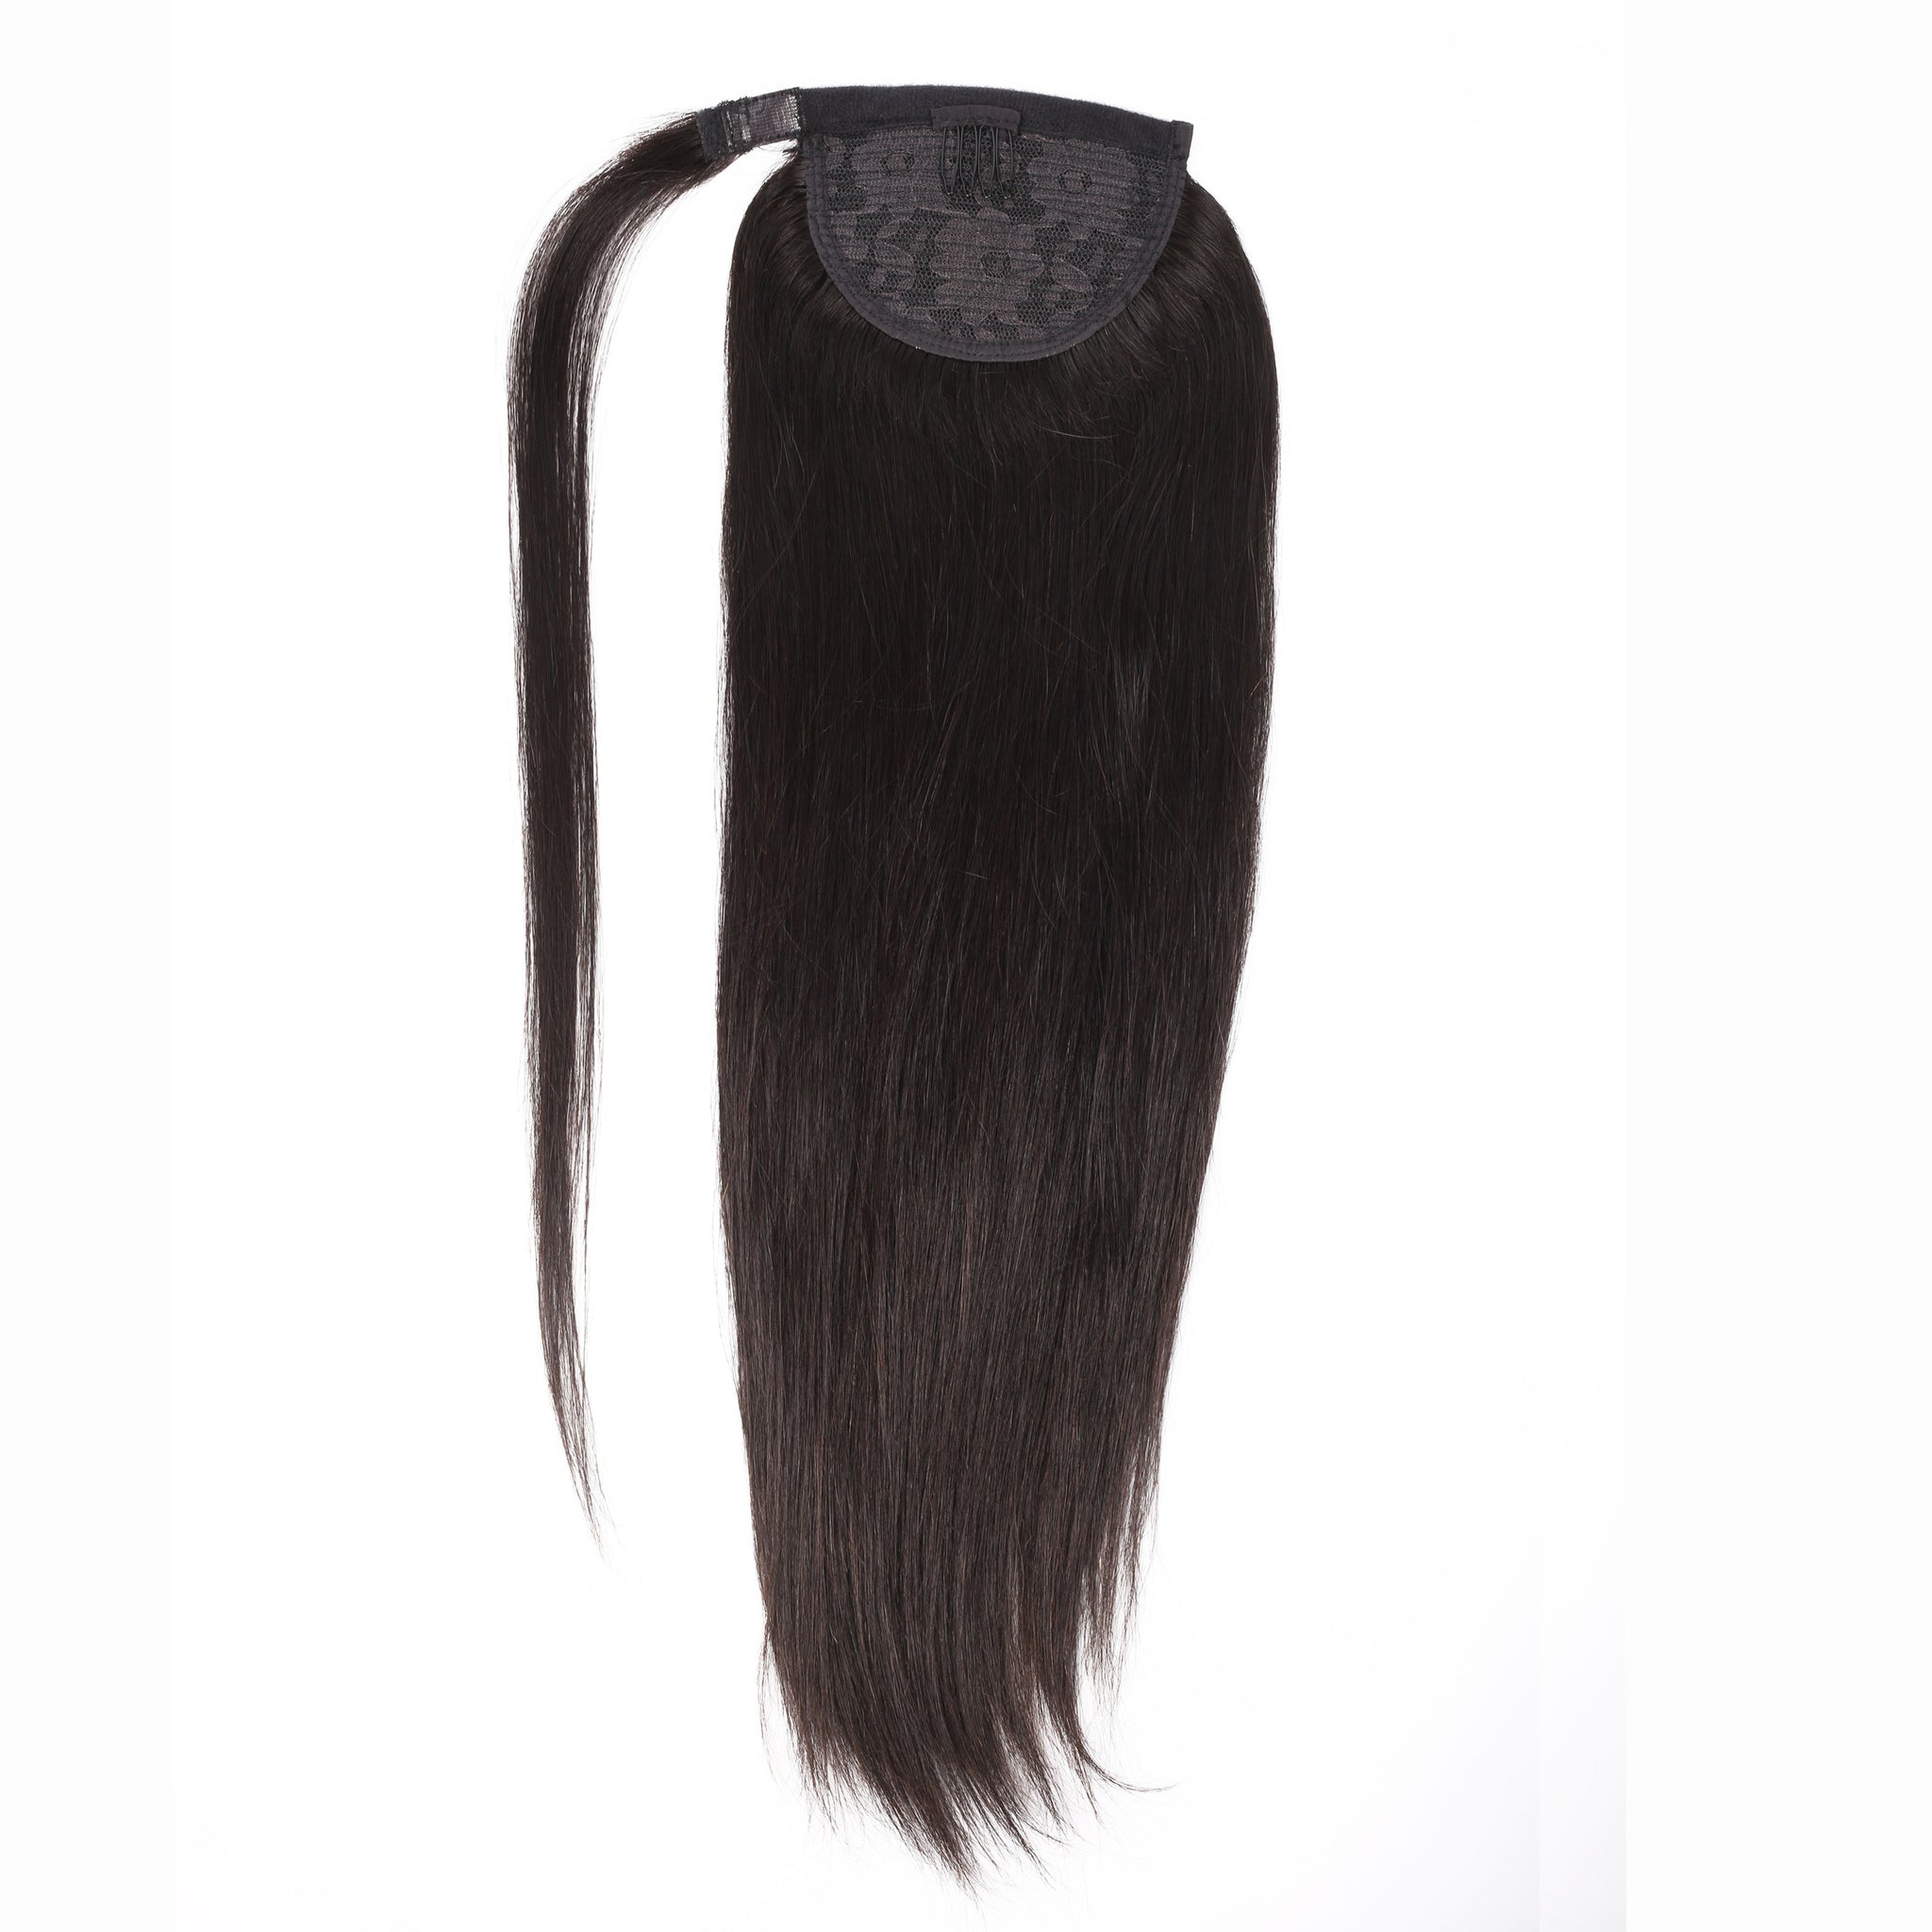 black pony Tail human hair